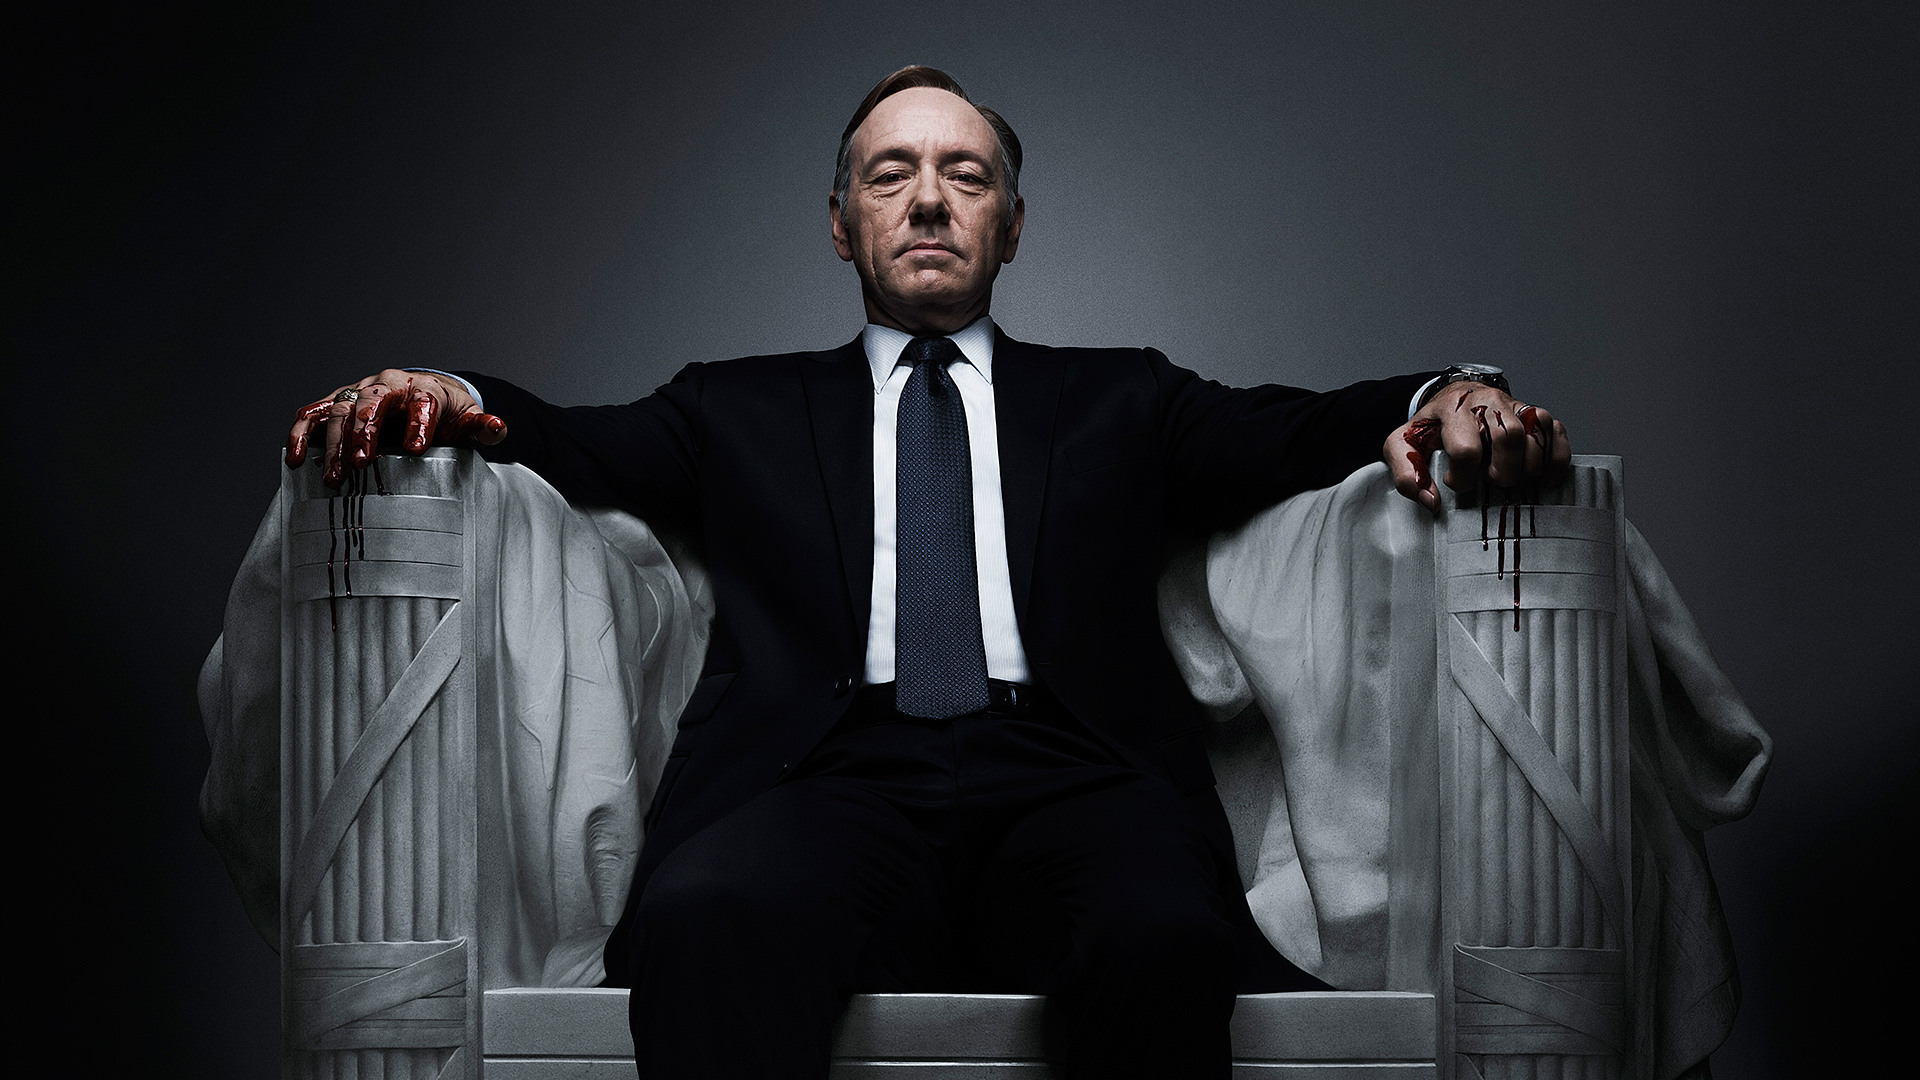 Kevin Spacey as President Francis Underwood - A long way from President Bartlett.